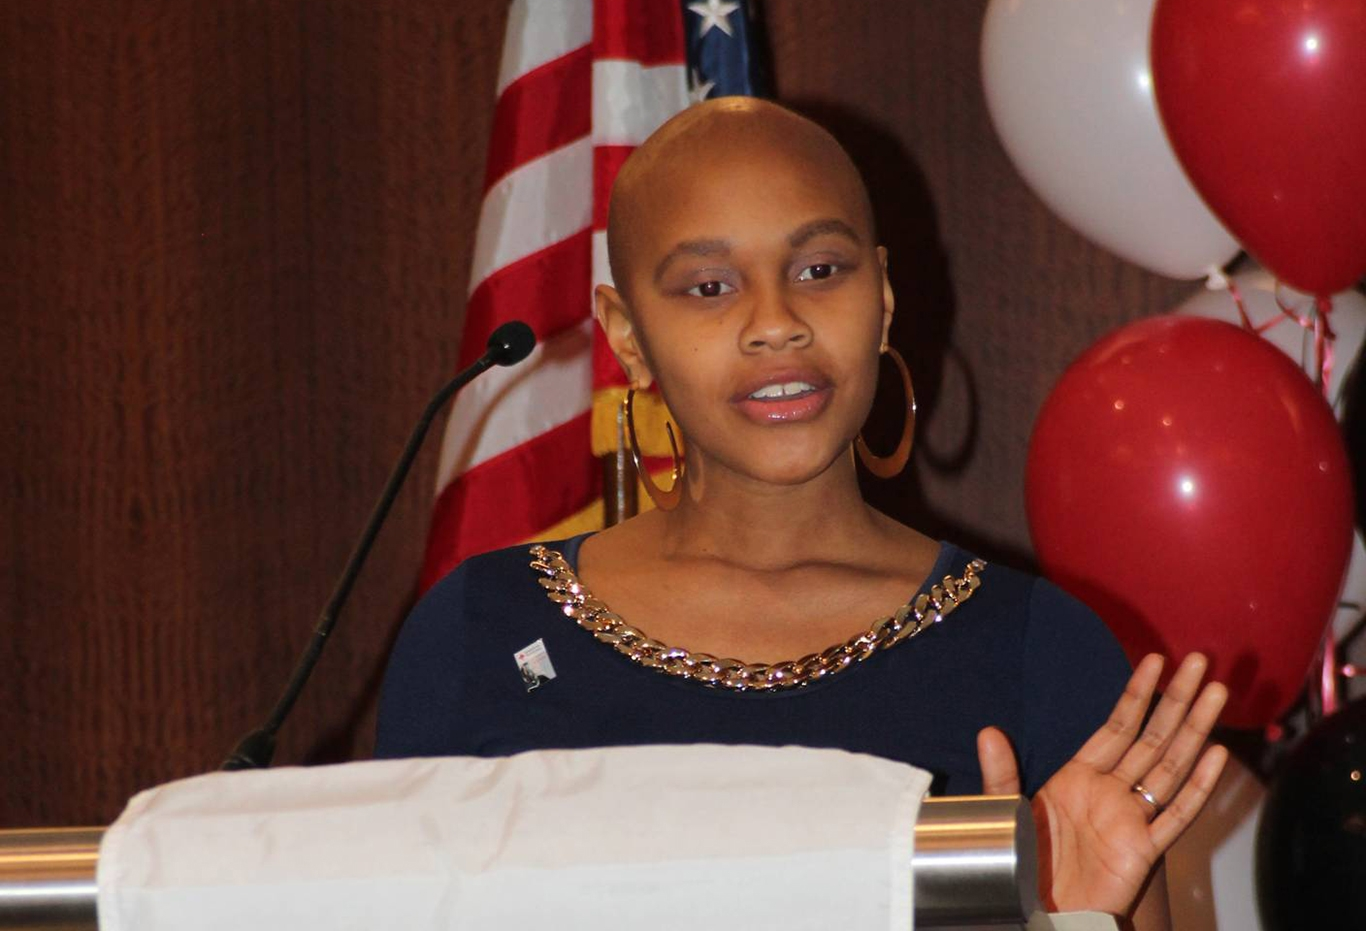 Johnetta Goolsby spoke at the Annual Minority Recruitment Luncheon hosted by the Red Cross Southern Region in Atlanta.